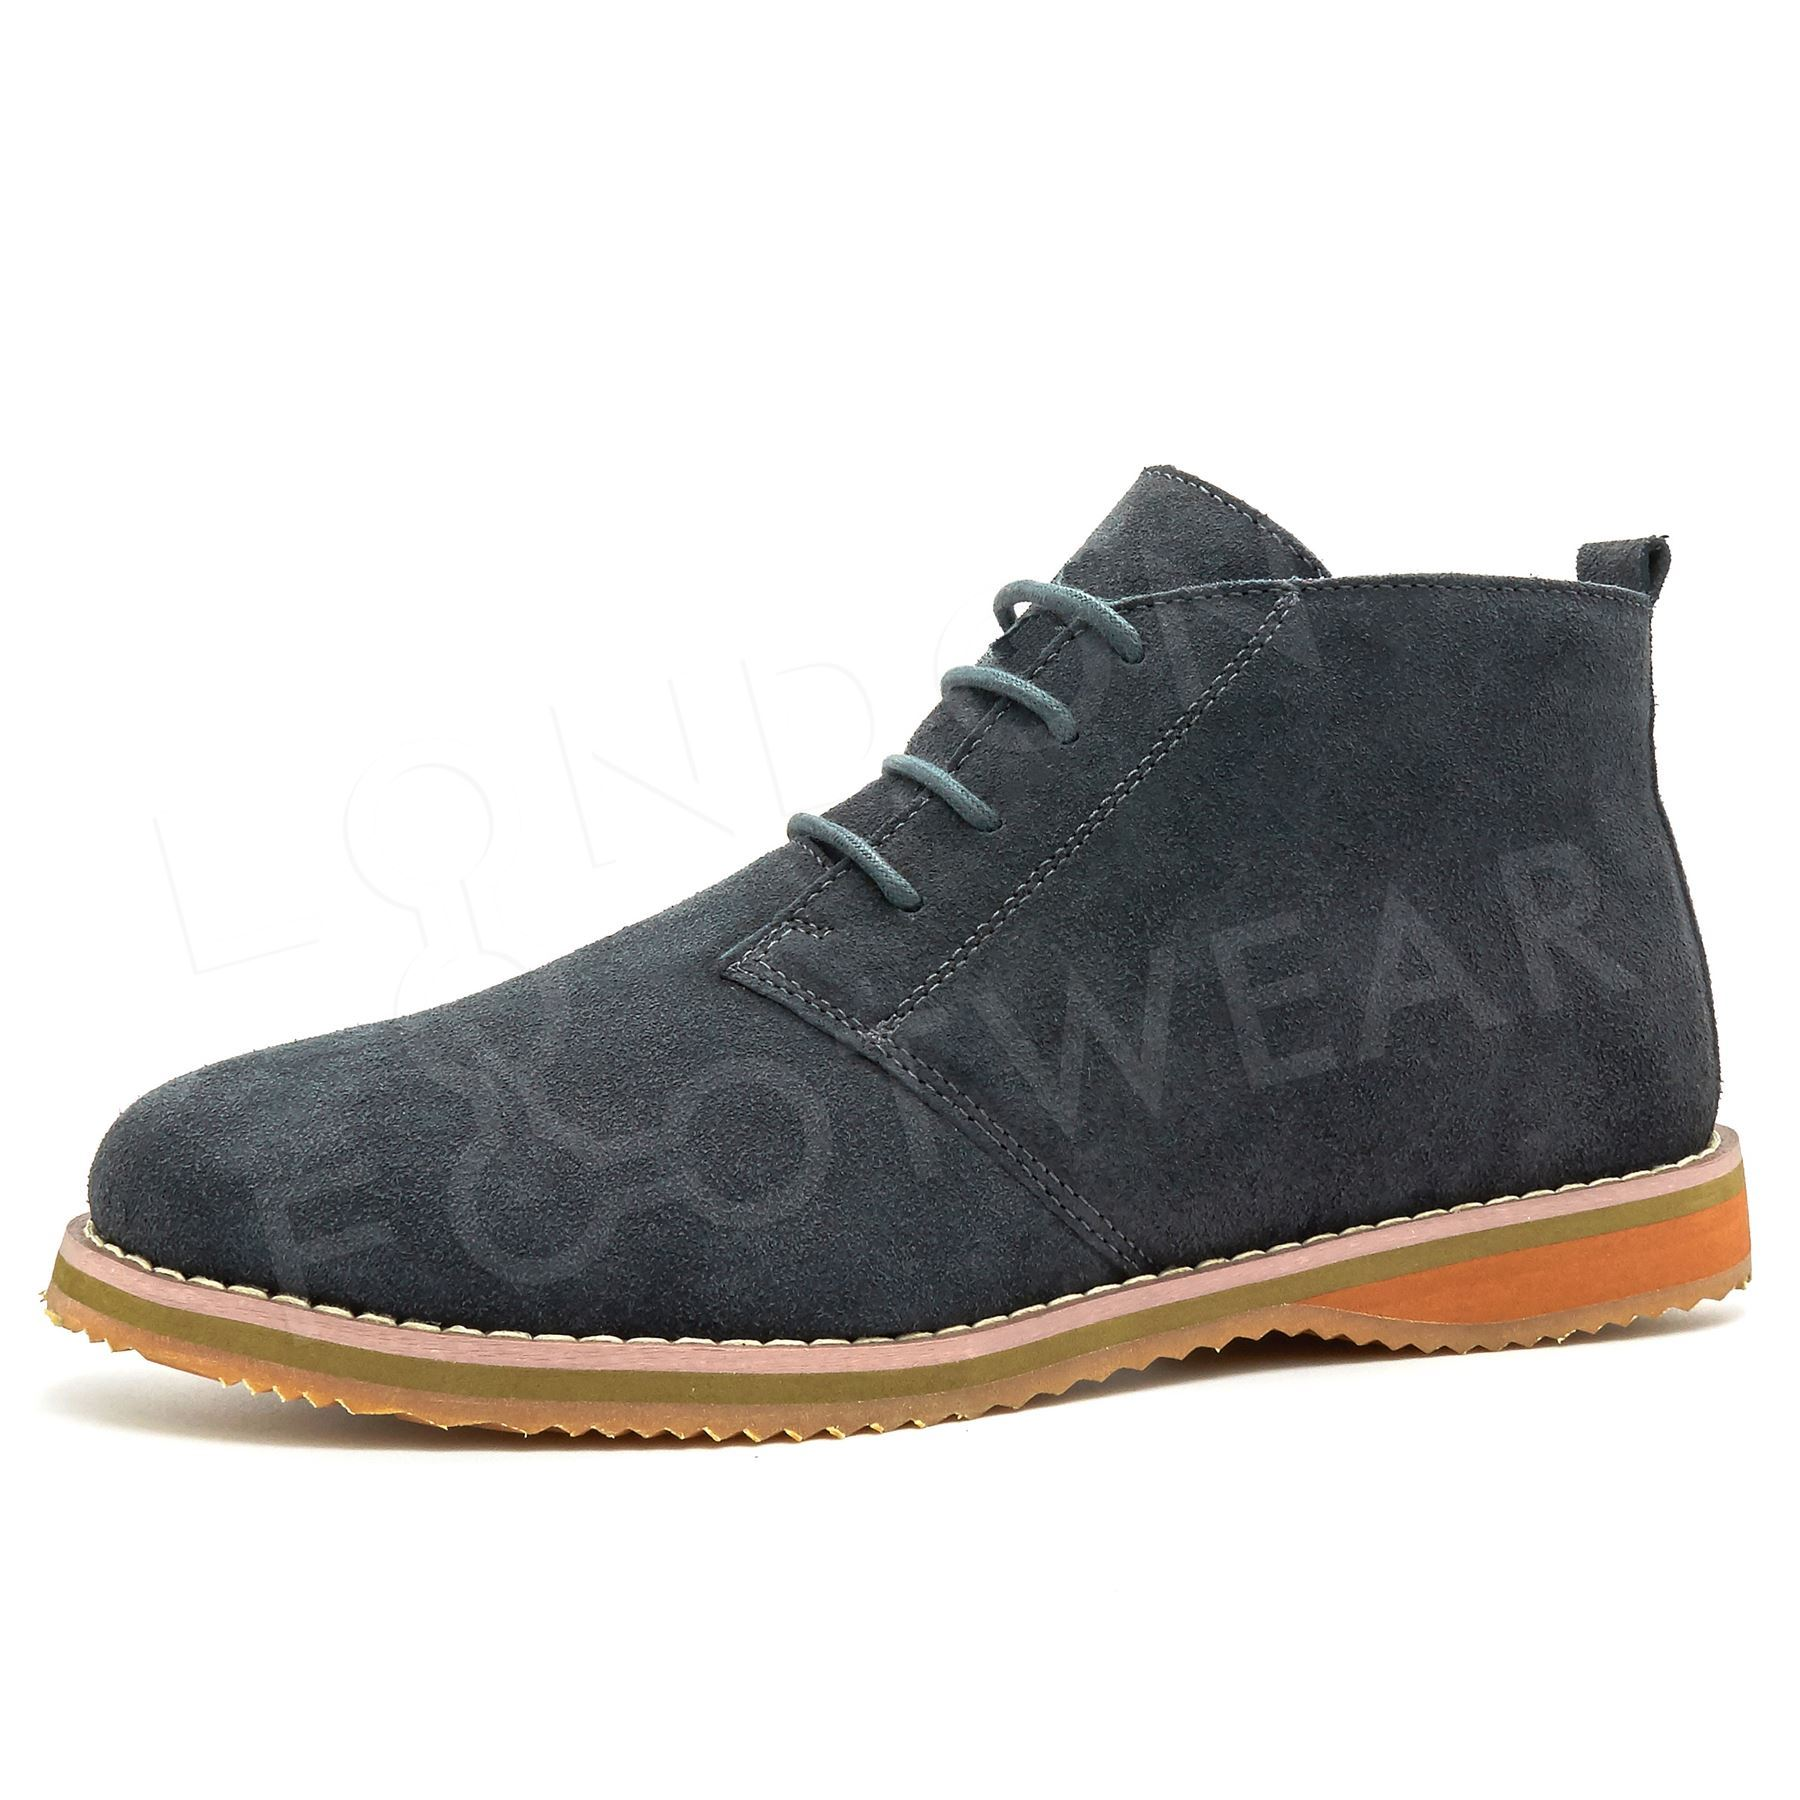 new mens suede leather desert chukka ankle boots casual lace up shoes size 6 11. Black Bedroom Furniture Sets. Home Design Ideas